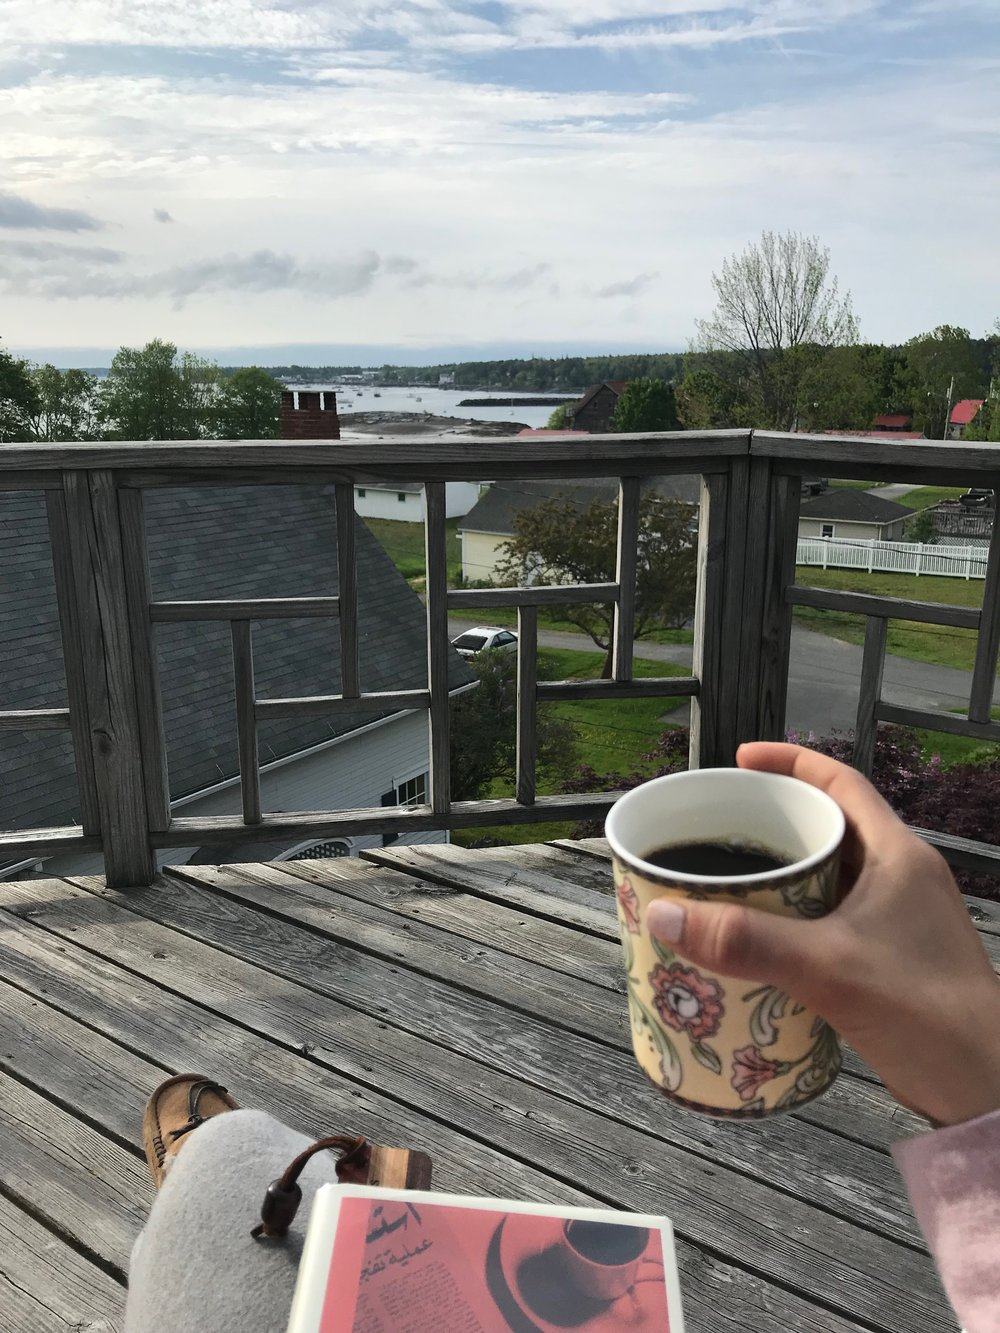 Enjoying a book, coffee, and the view before breakfast at the Kingsleigh Inn, Southwest Harbor, ME